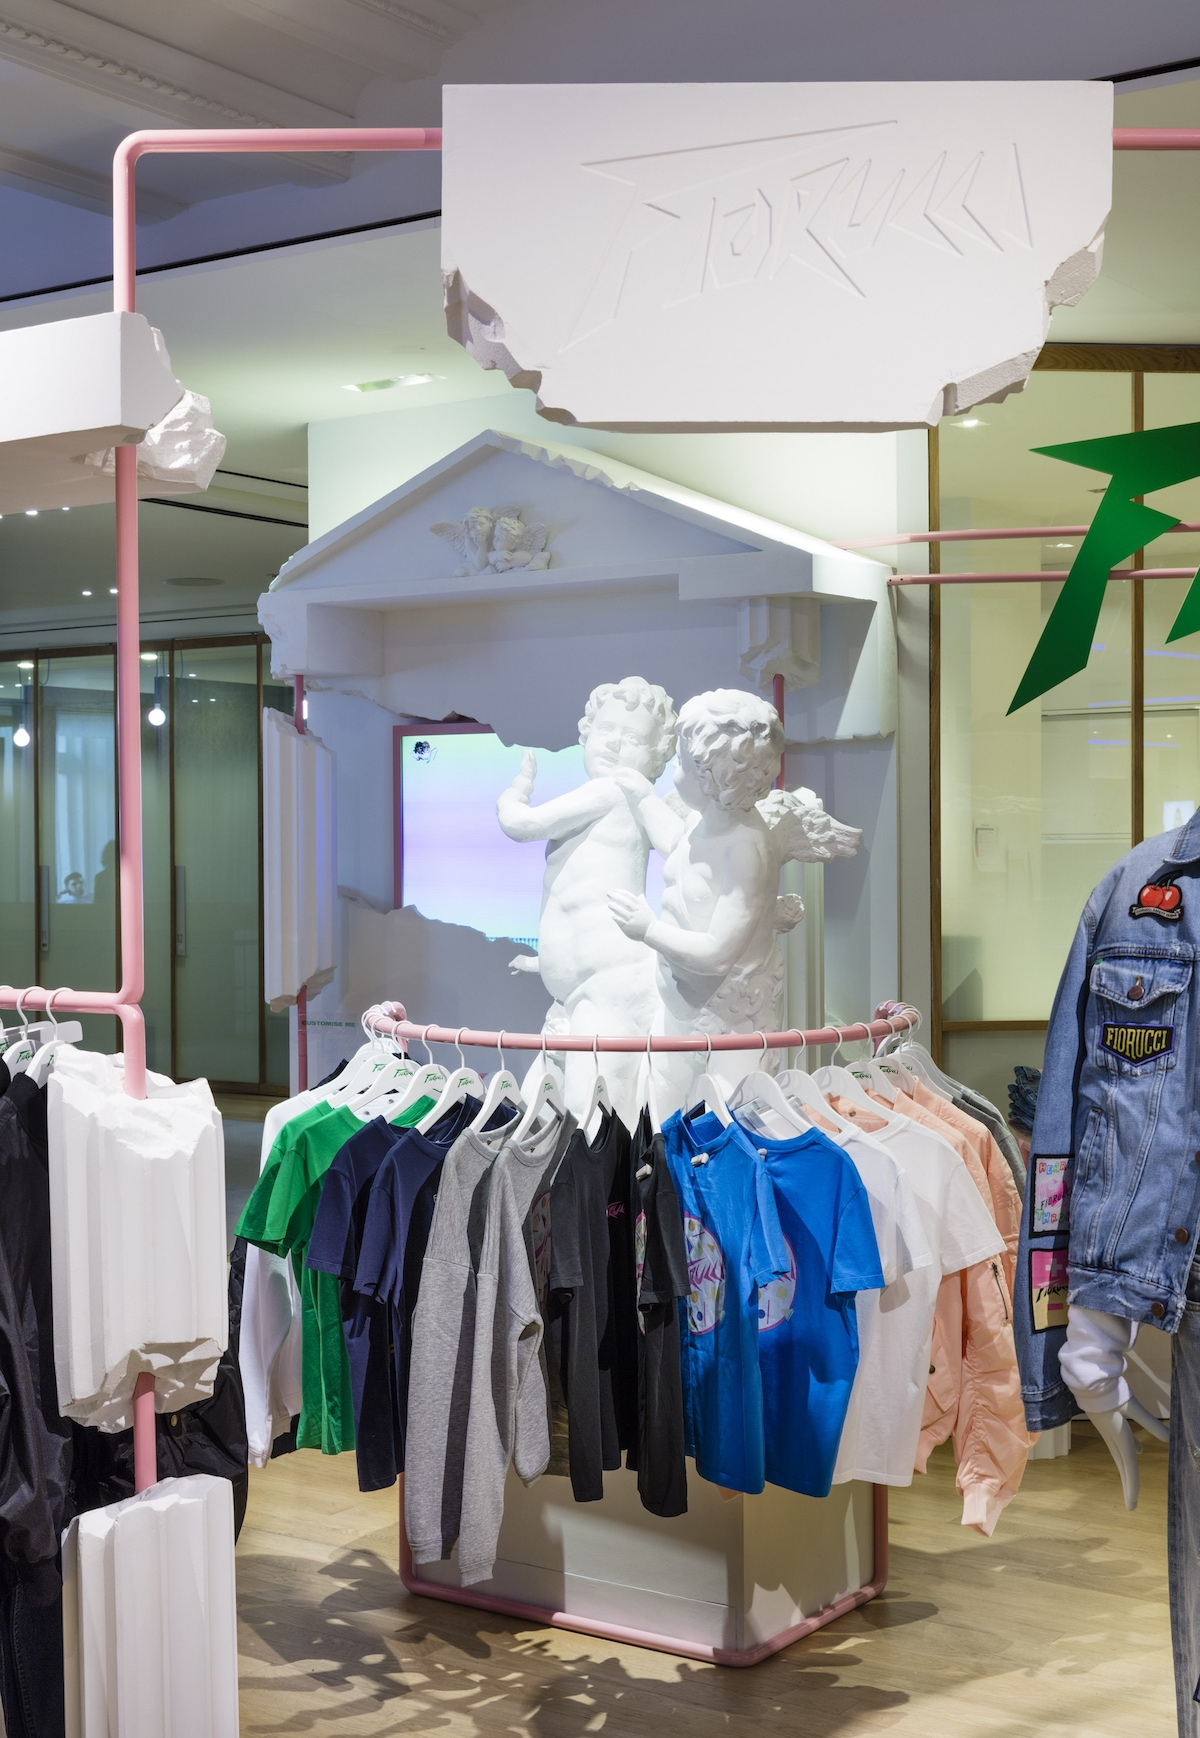 Fioruci's new shop-in-shop space at Selfridges London